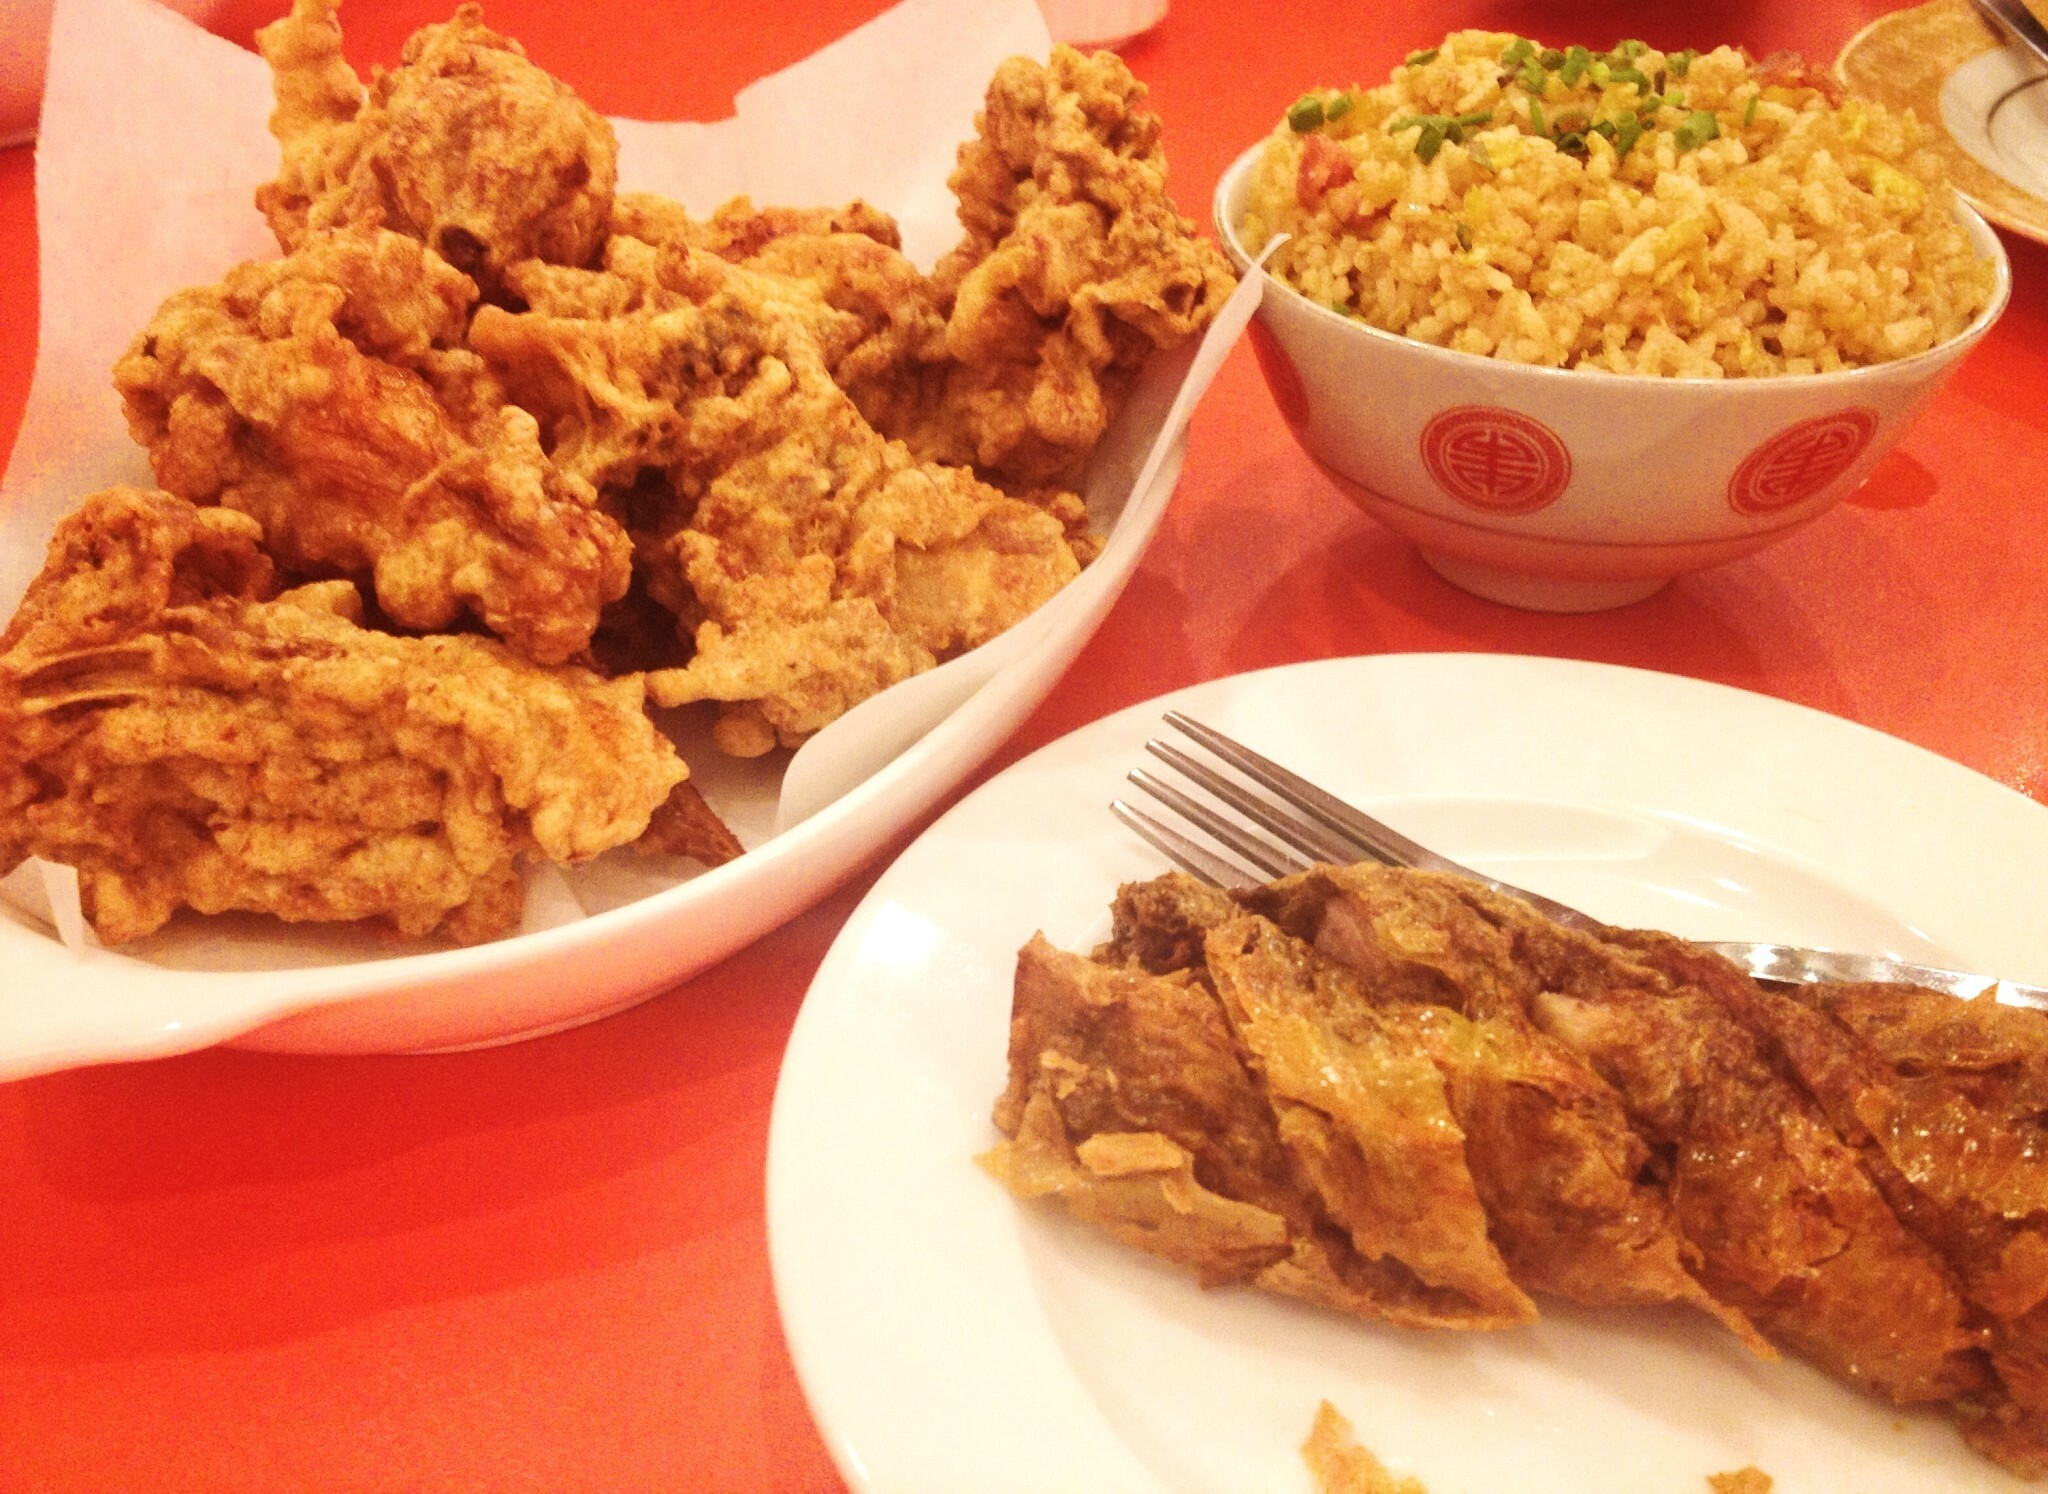 SINCERITY Cafe & Restaurant: Serving Best Fried Chicken Since 1956